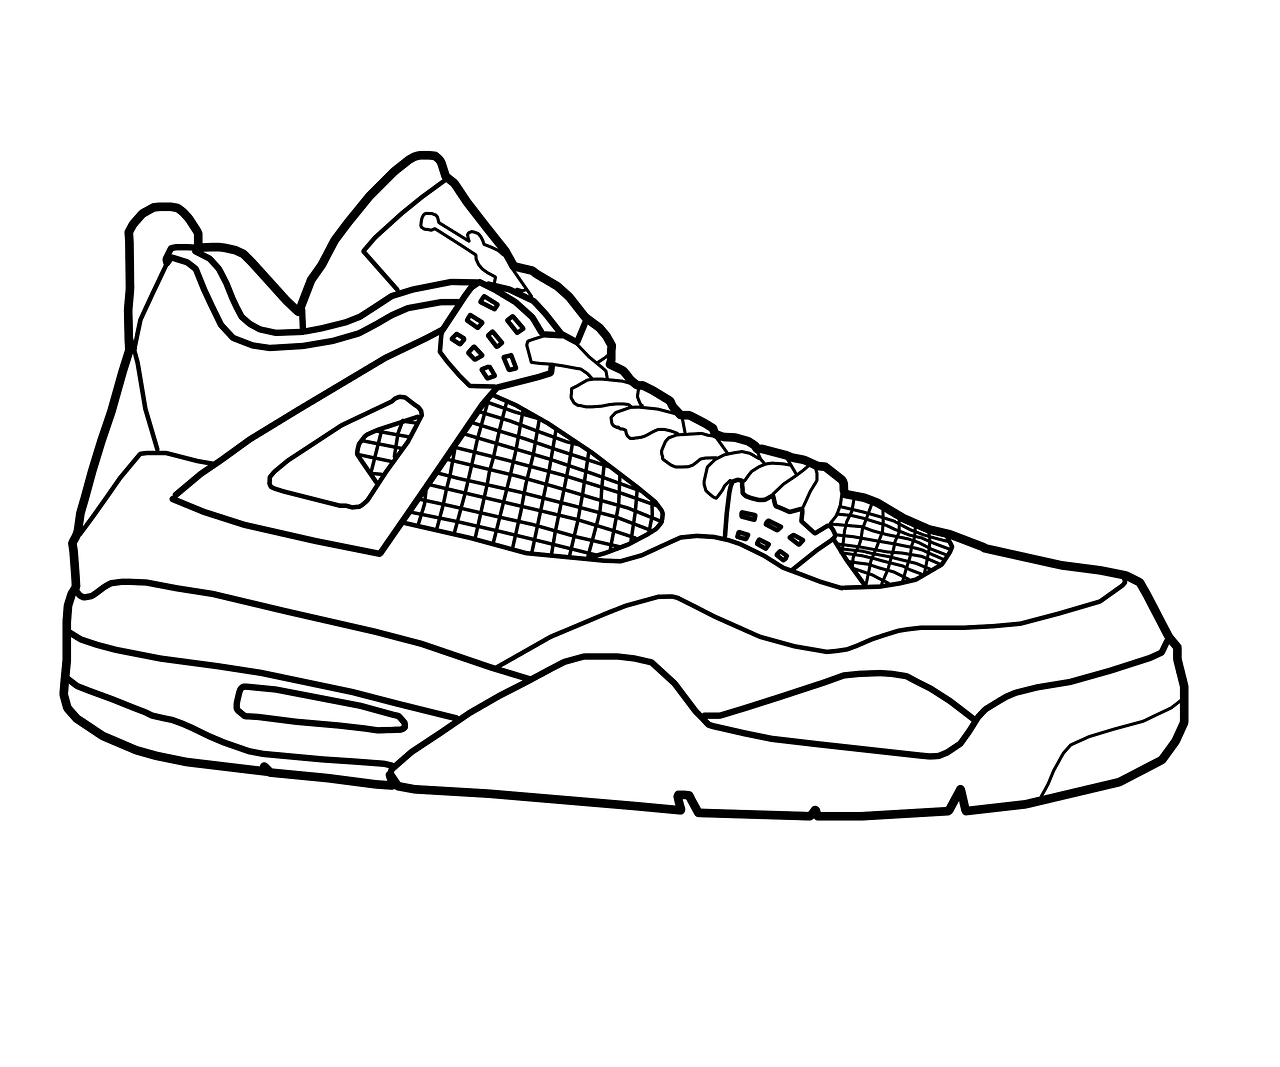 coloring pages of shoes basketball shoe coloring pages download and print for free pages coloring of shoes